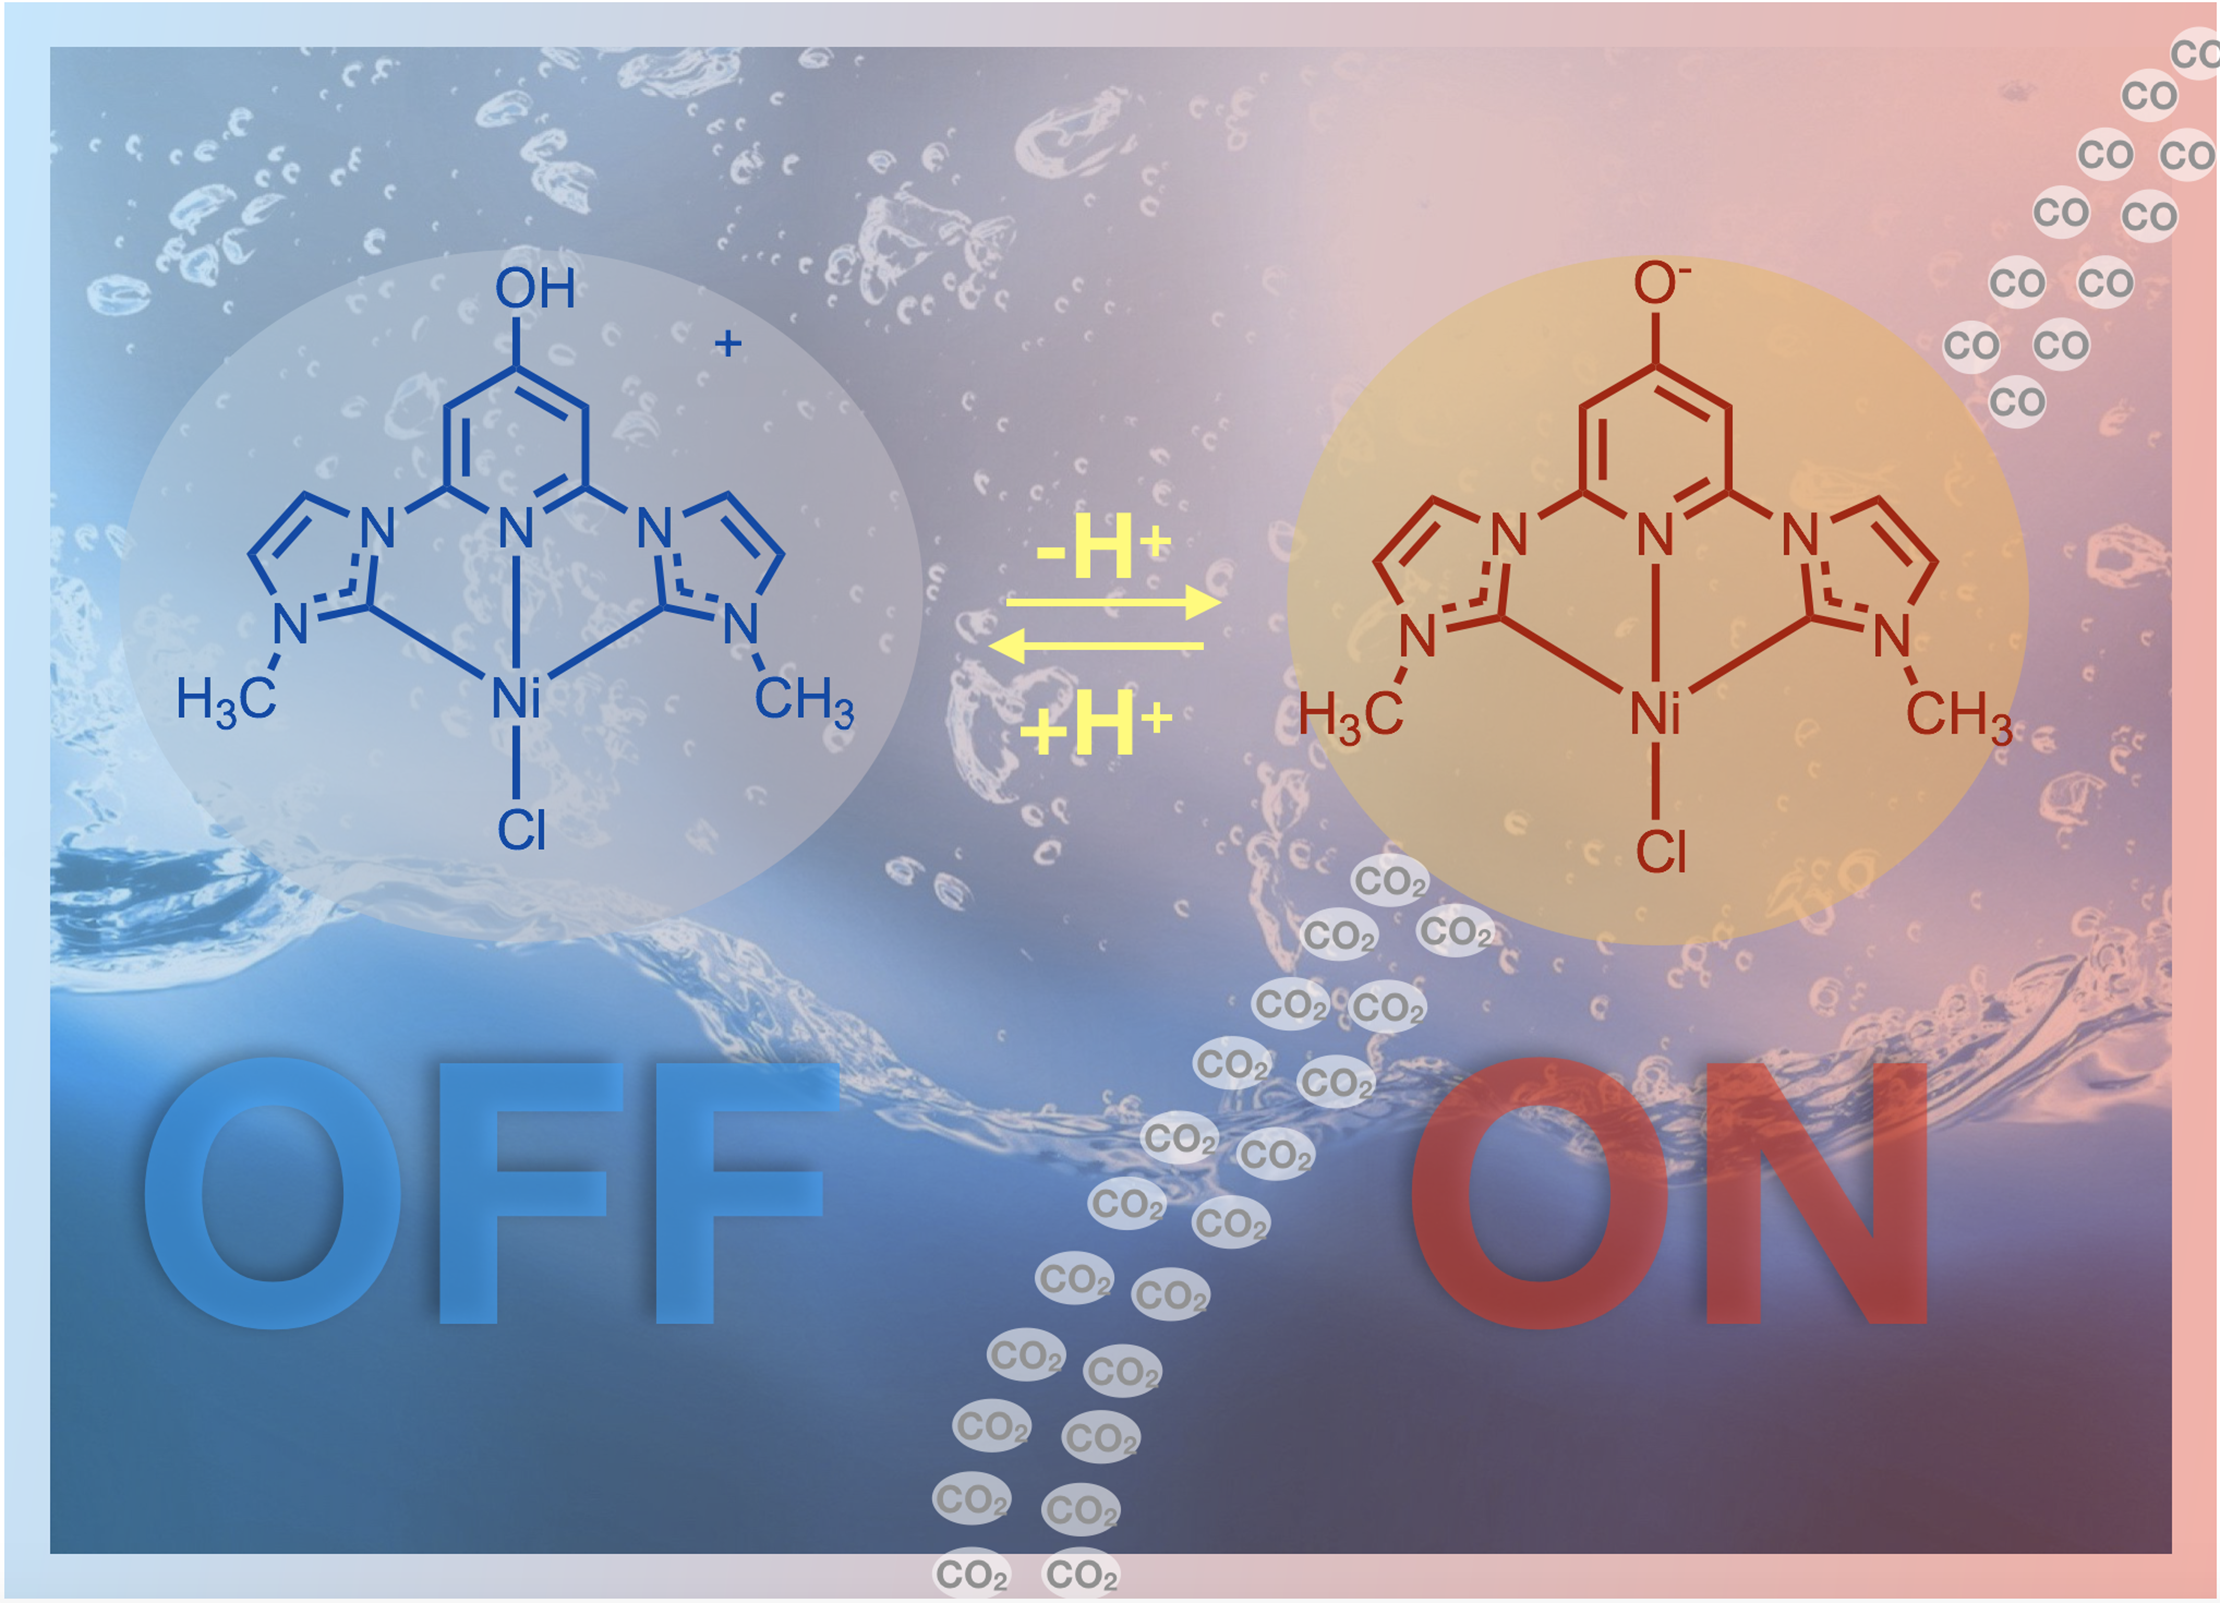 Back cover image for Ni complexes for CO2 reduction showing that the protonation state changes catalyst activity